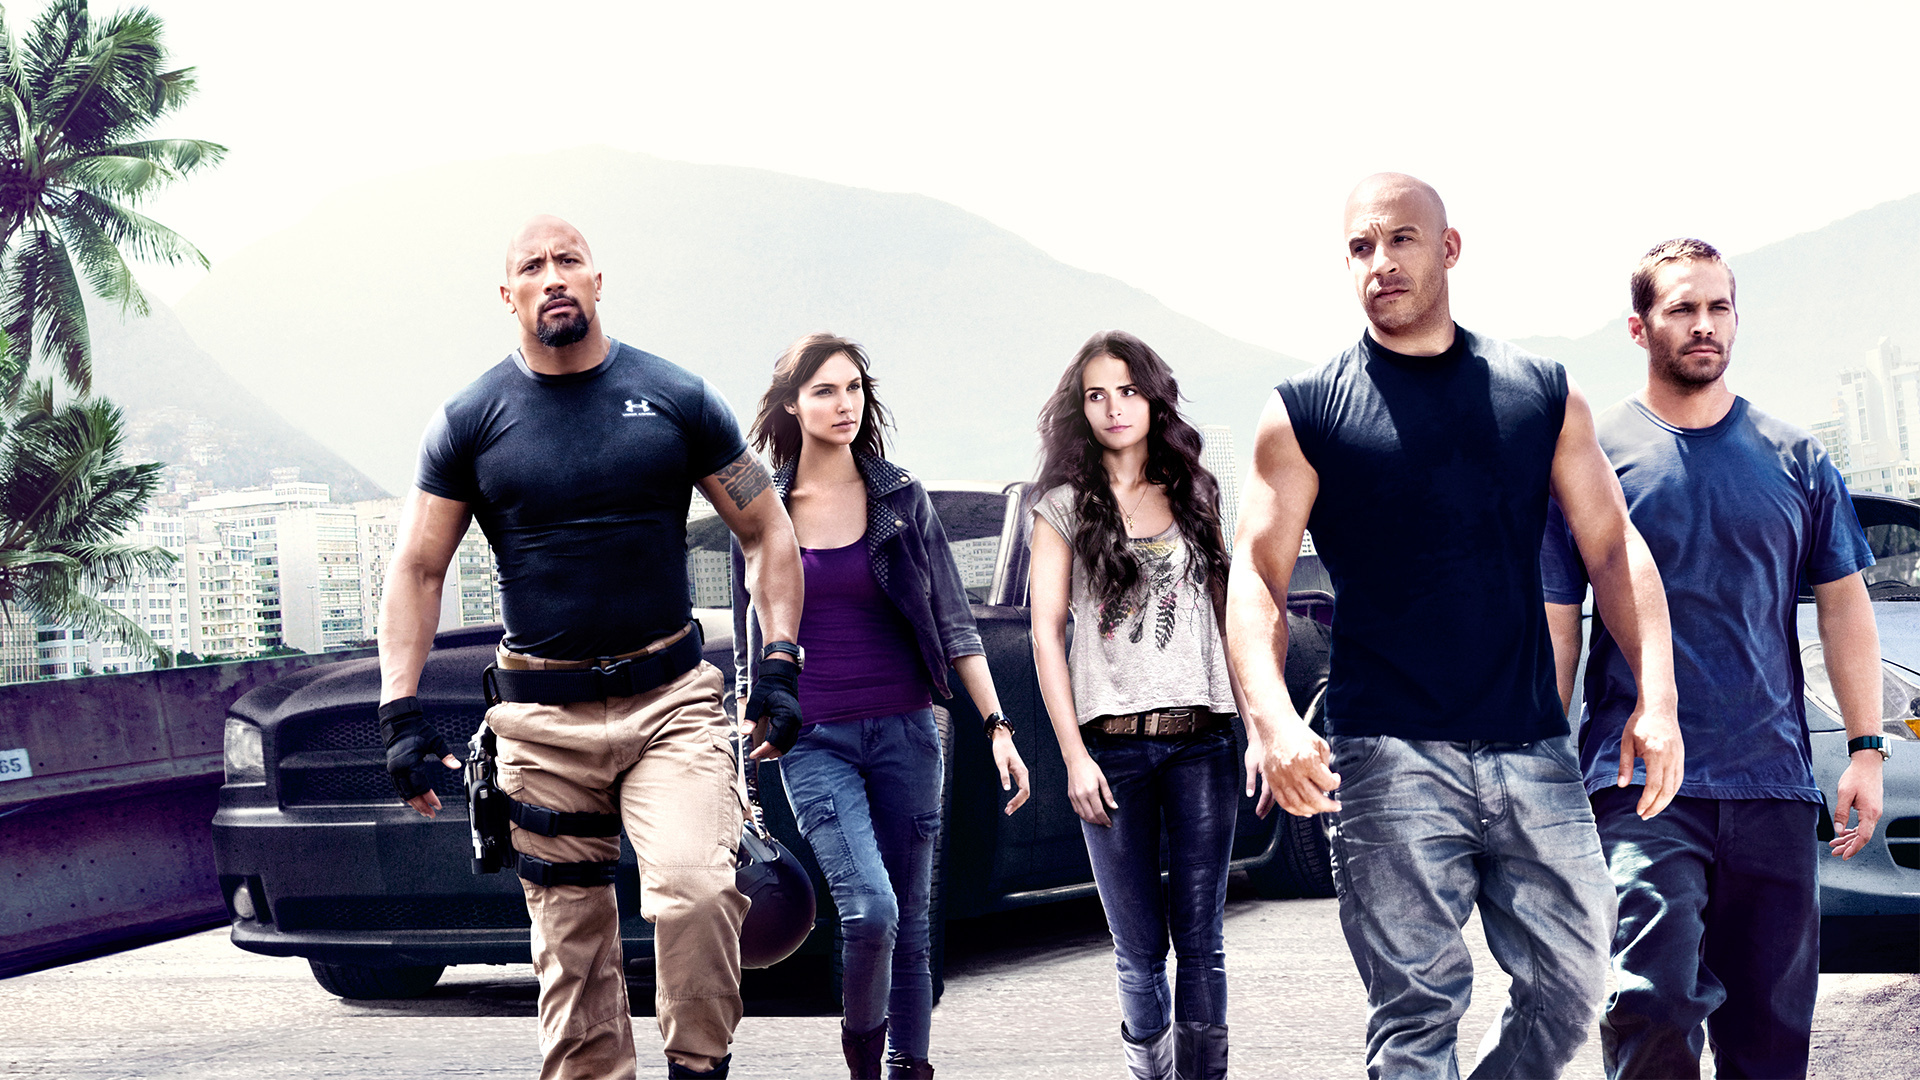 fast five furious g wallpaper 1920x1080 101849 wallpaperup. Black Bedroom Furniture Sets. Home Design Ideas